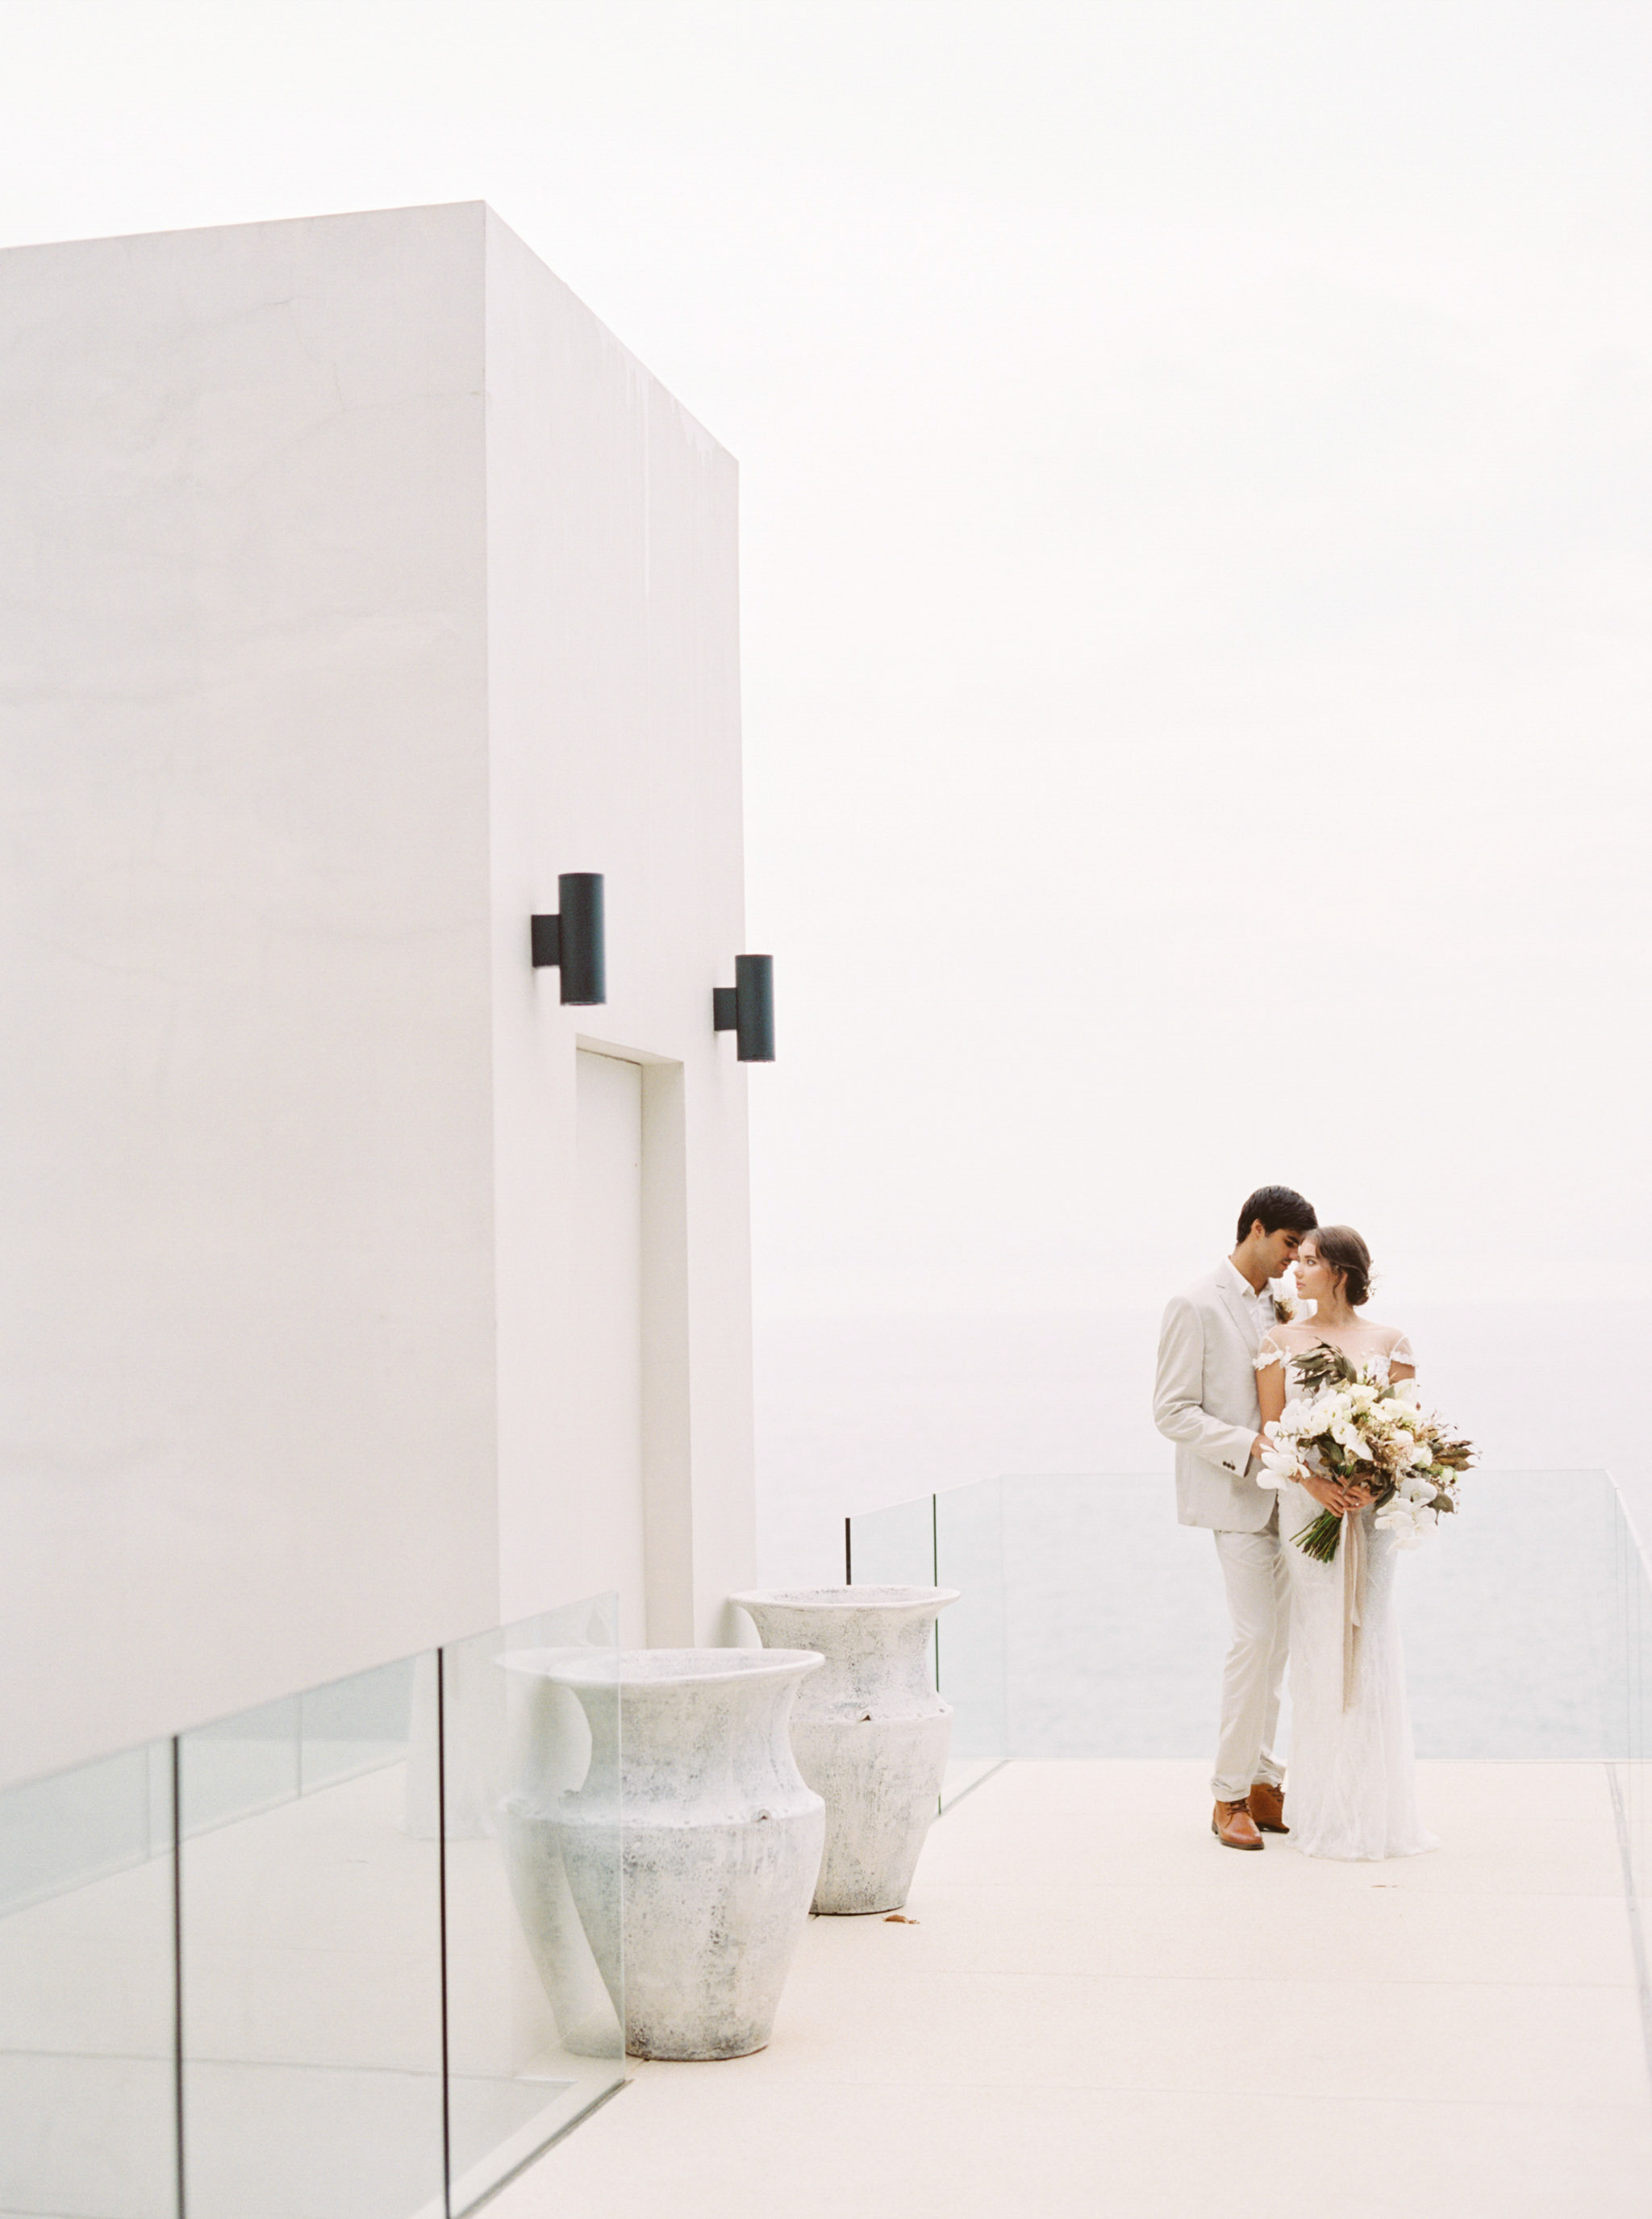 Destination Wedding at The Aquila Luxury Villas in Phuket Thailand Fine Art Film Wedding Photographer Sheri McMahon-00067-67.jpg